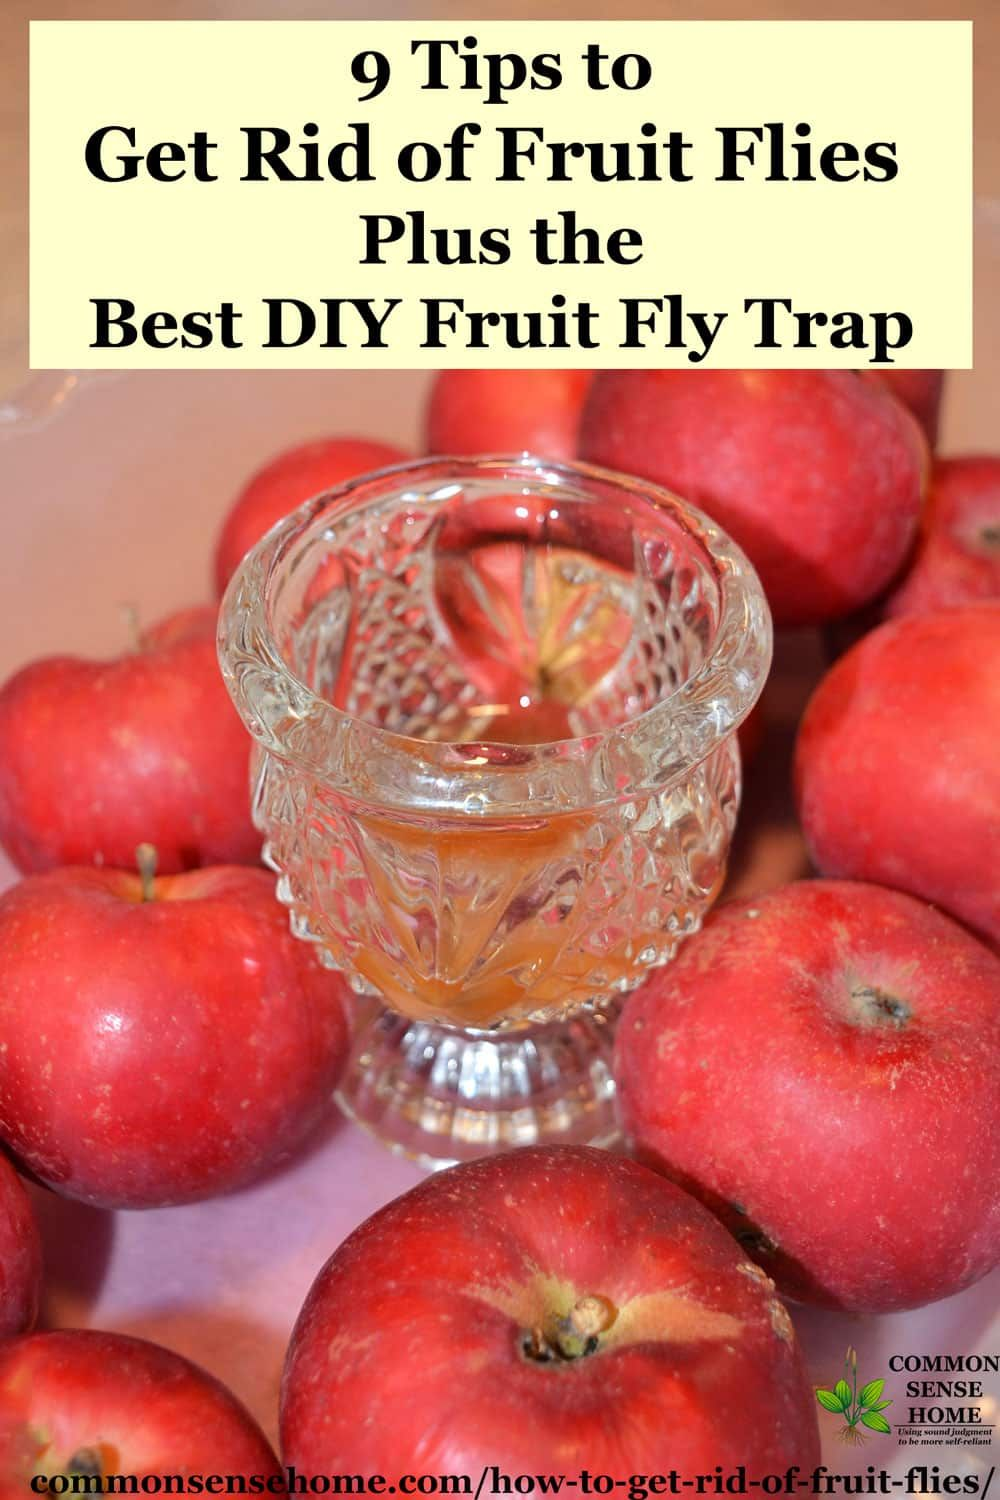 9 Tips To Get Rid Of Fruit Flies And The Best Fruit Fly Trap Fruit Fly Trap Fruit Flies Best Fruit Fly Trap